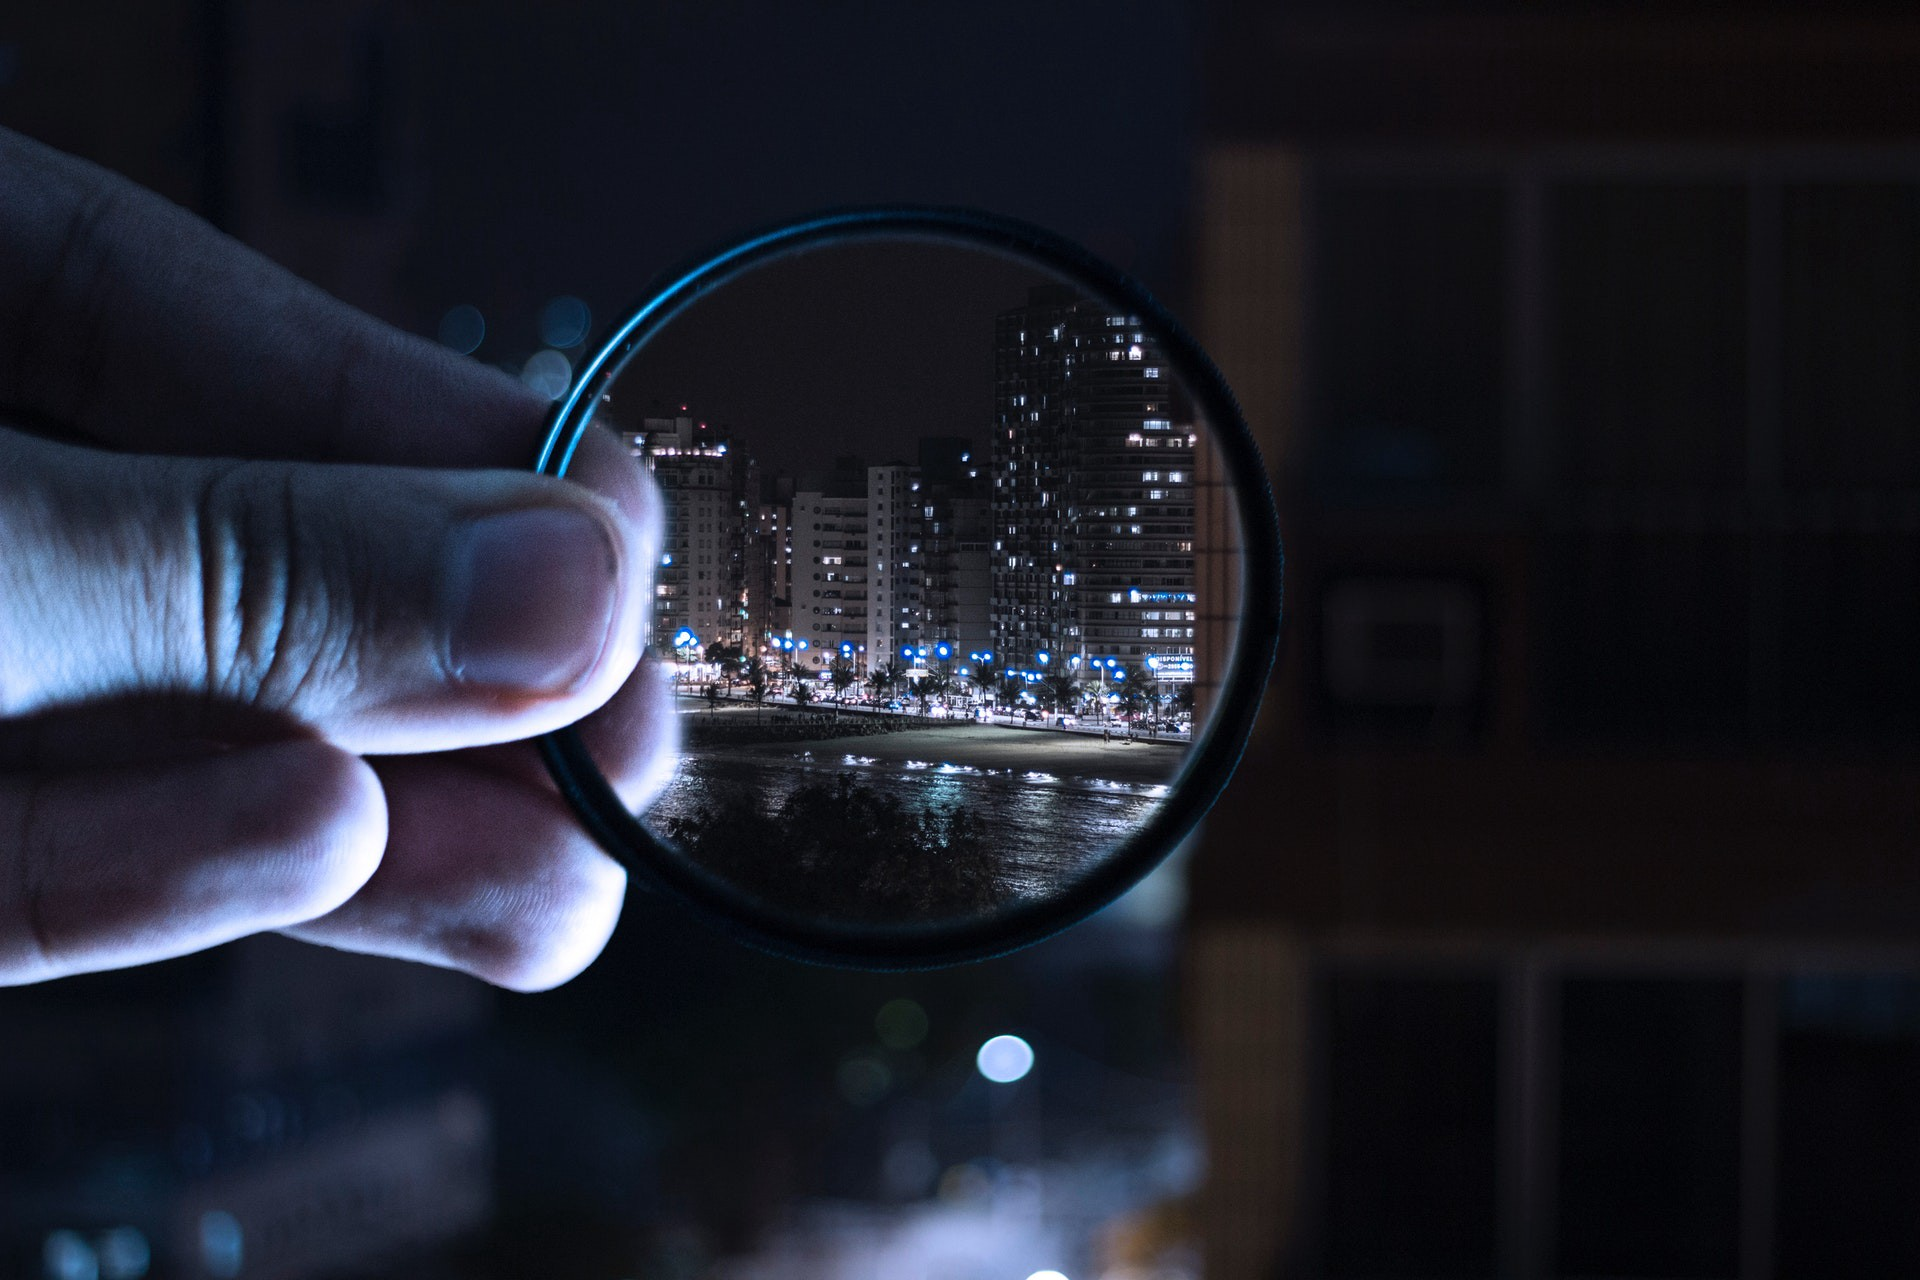 Someone is looking at the city through a magnifying glass